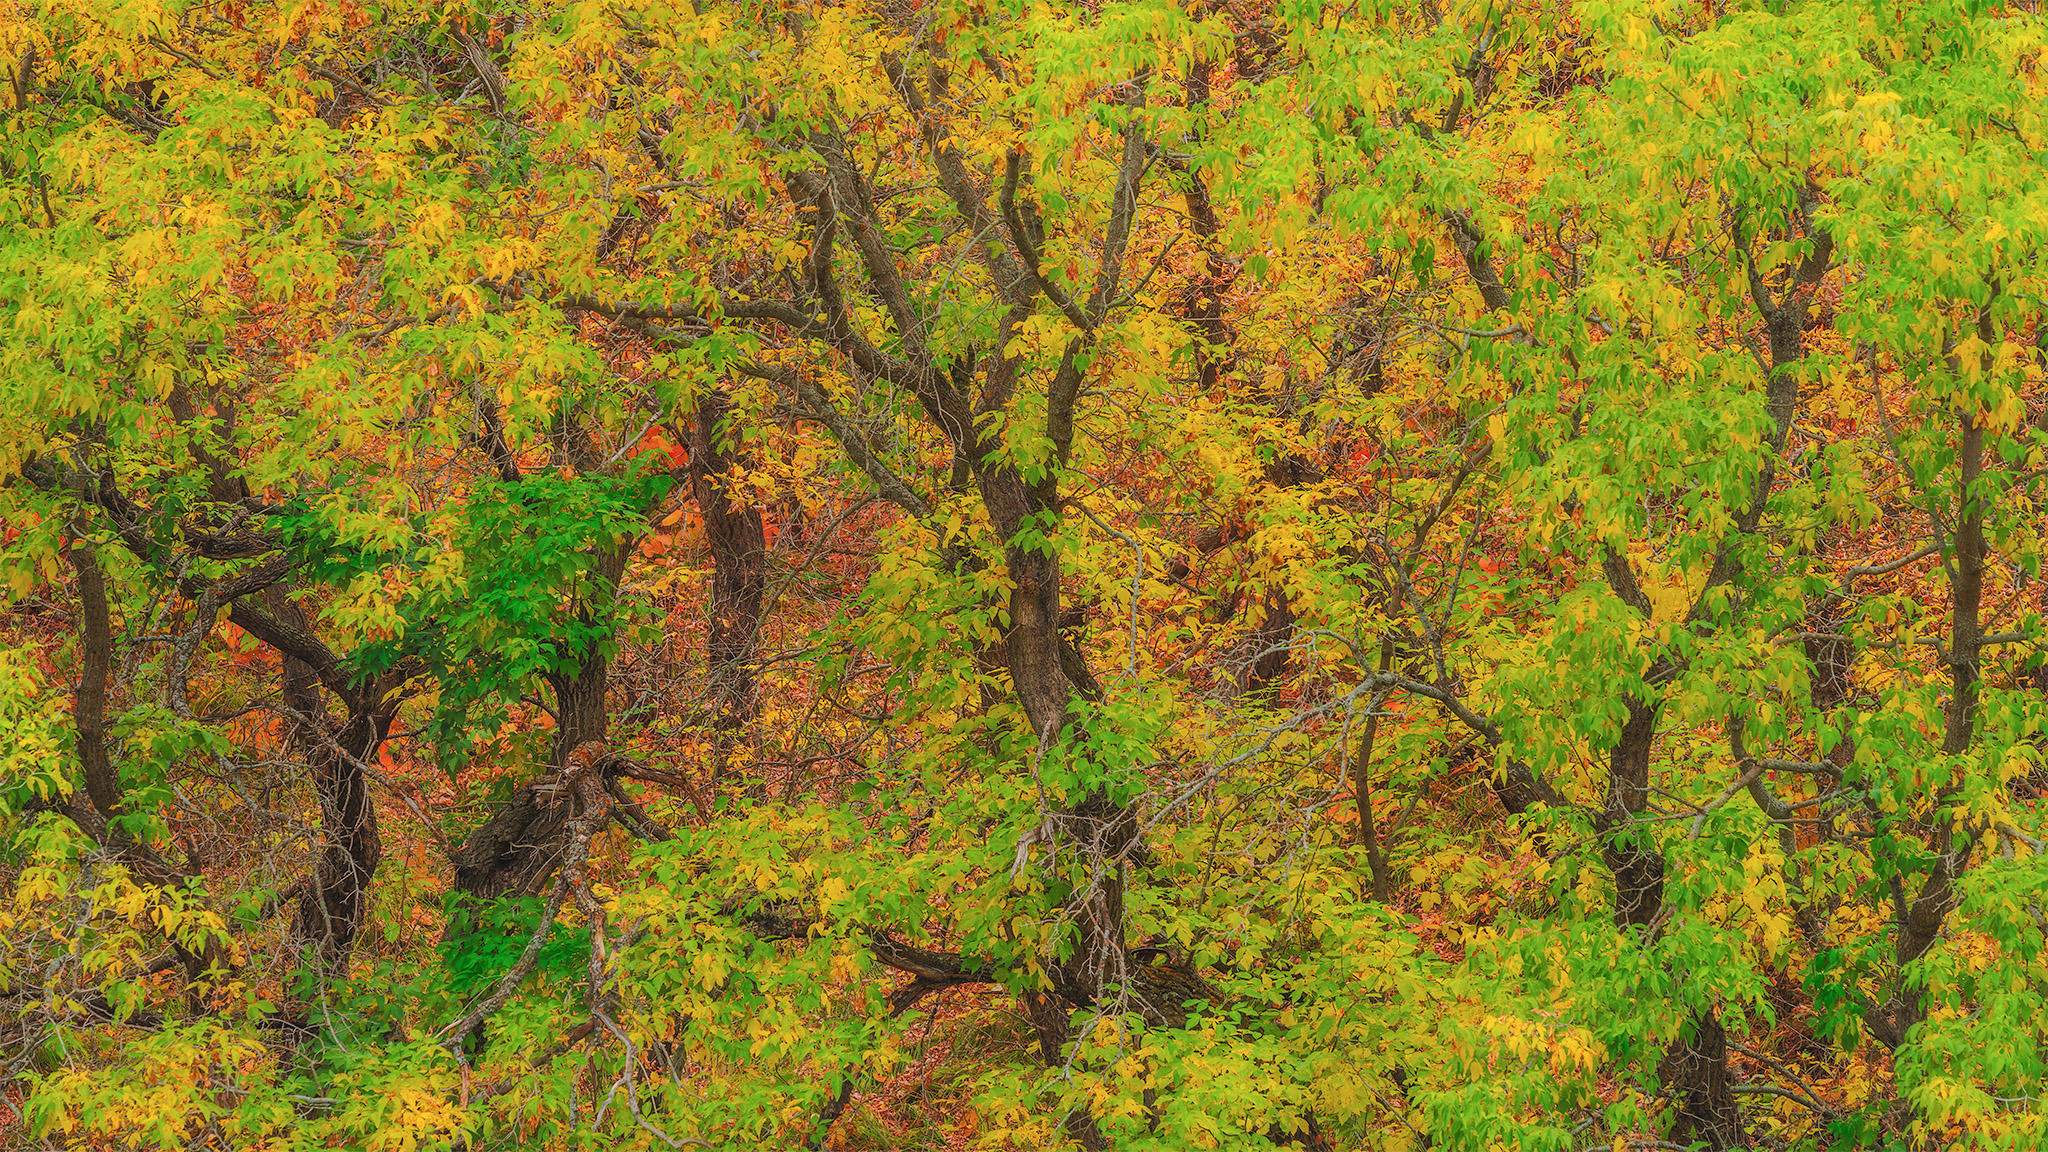 An intimate landscape photograph of a twisted forest with vibrant fall foliage in Fort Qu'appelle Saskatchewan